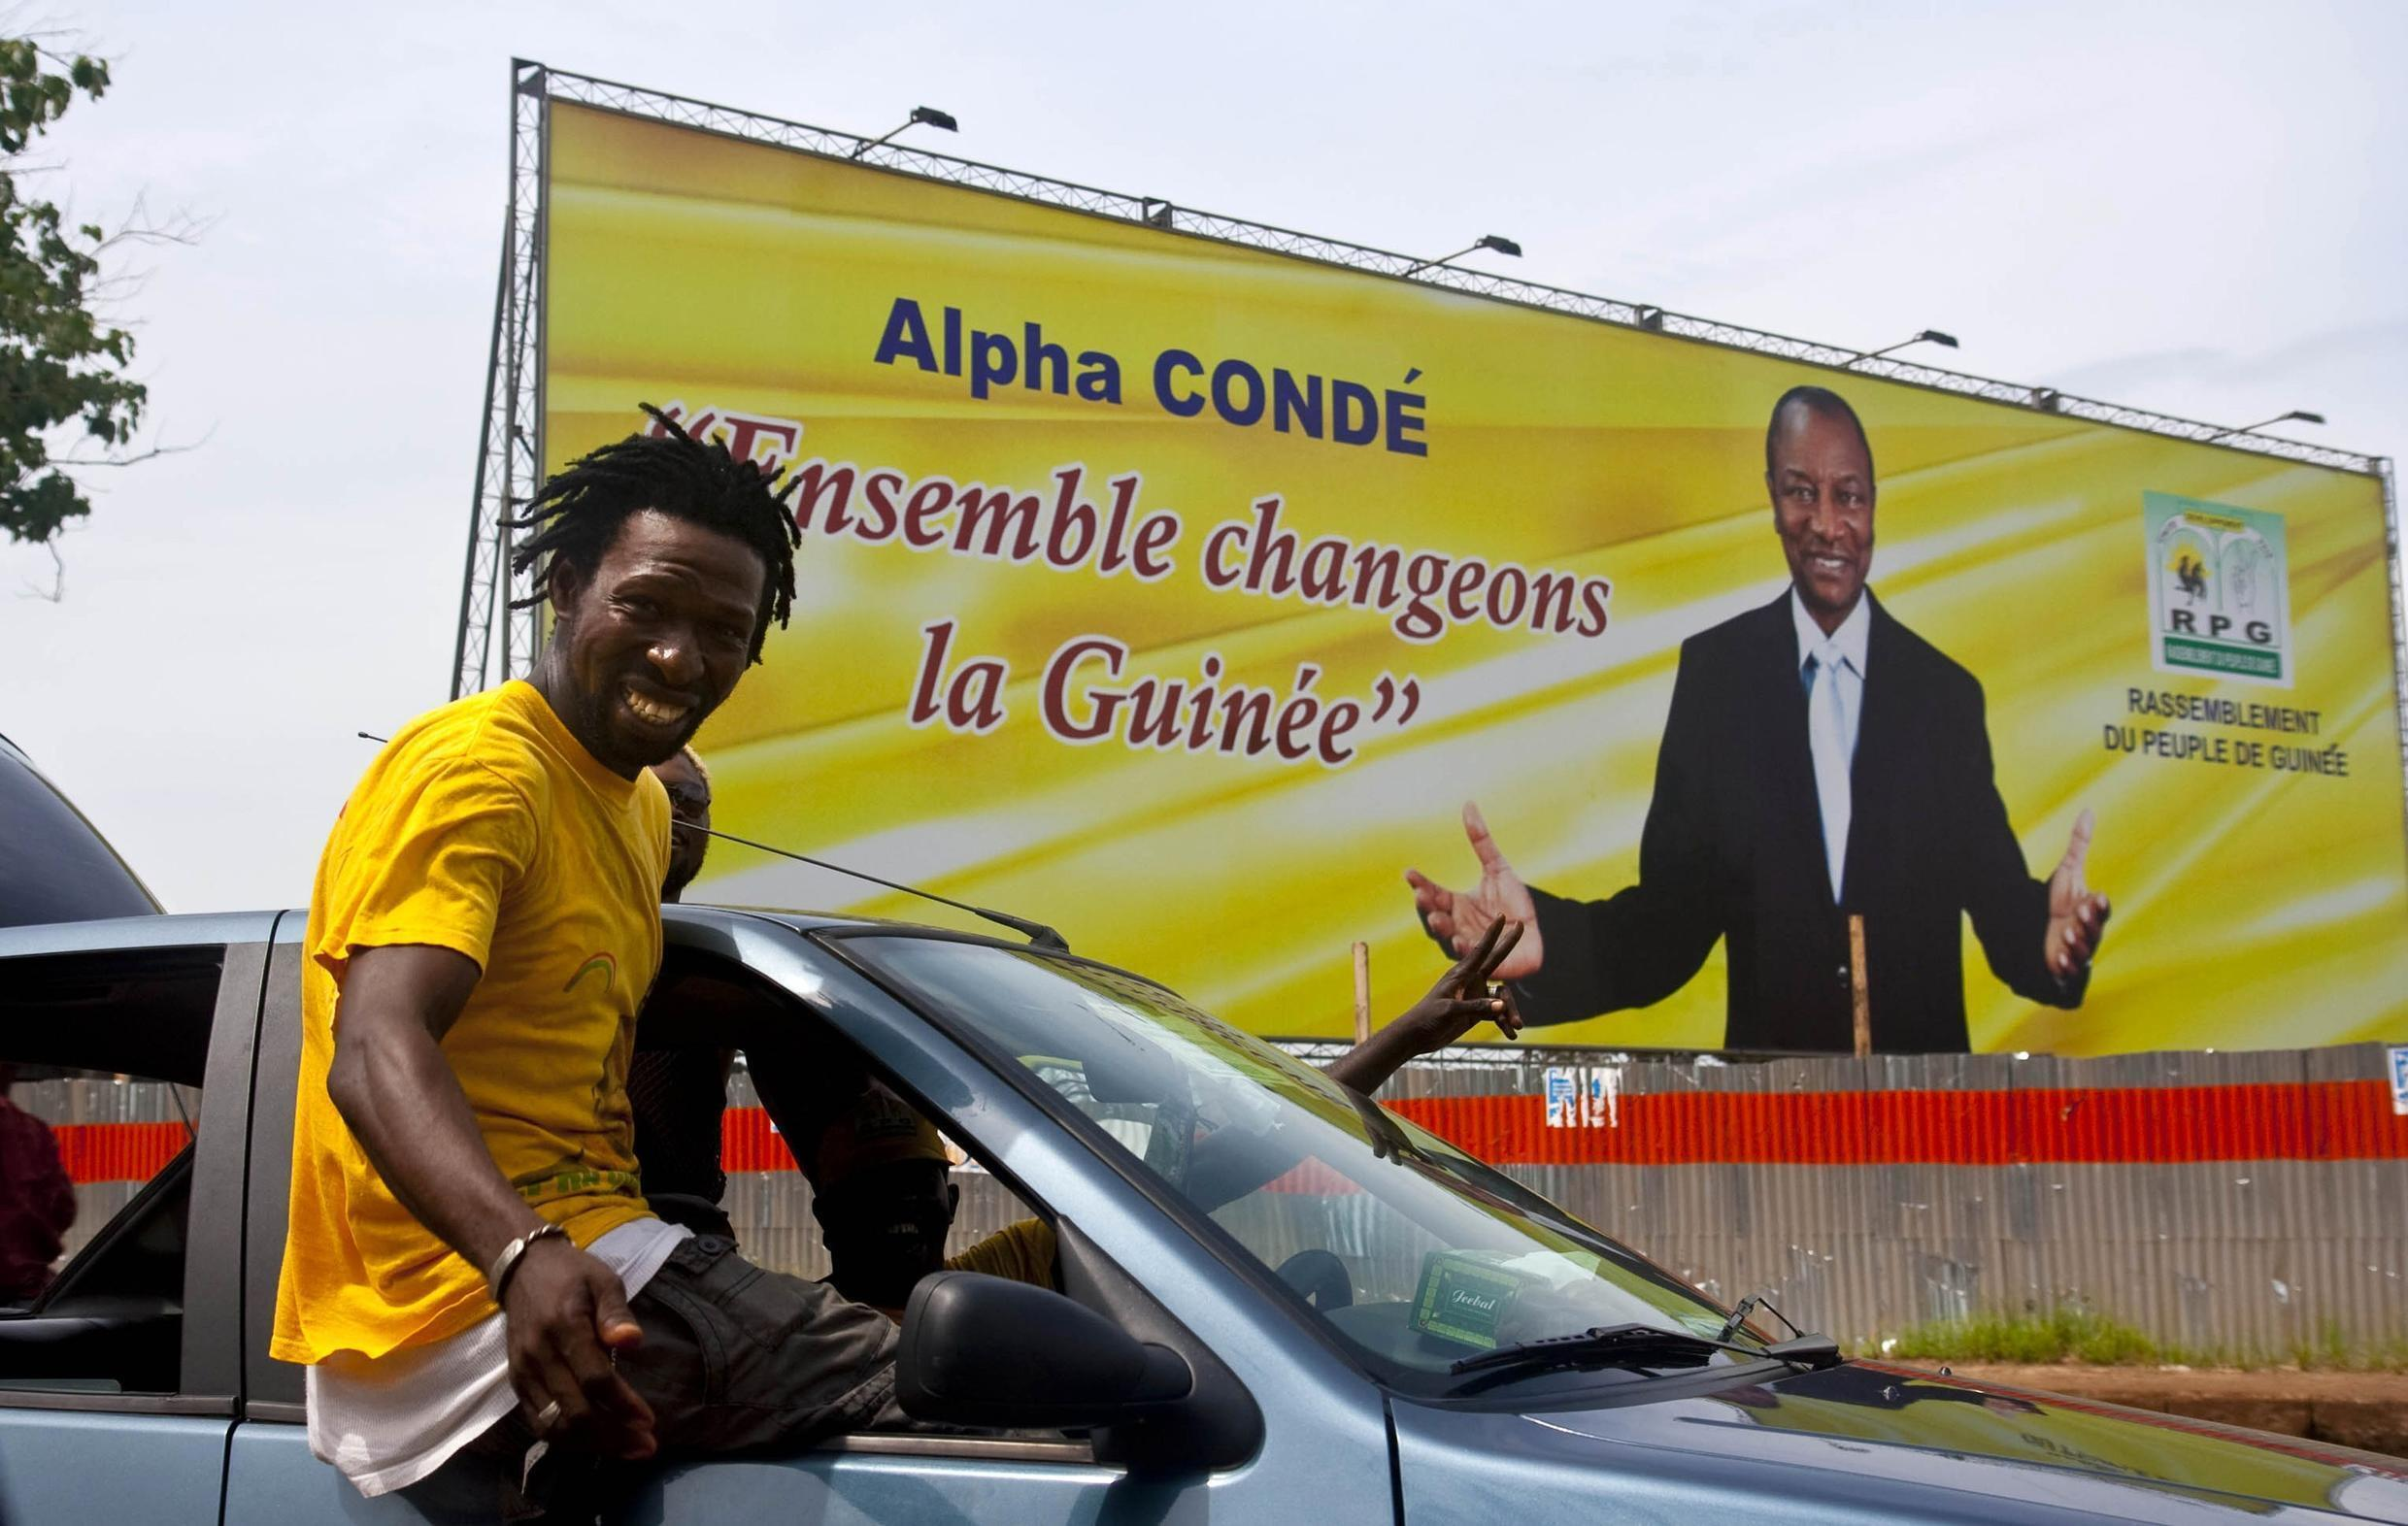 Supporters of Guinea's President elect Alpha Conde celebrate his victory